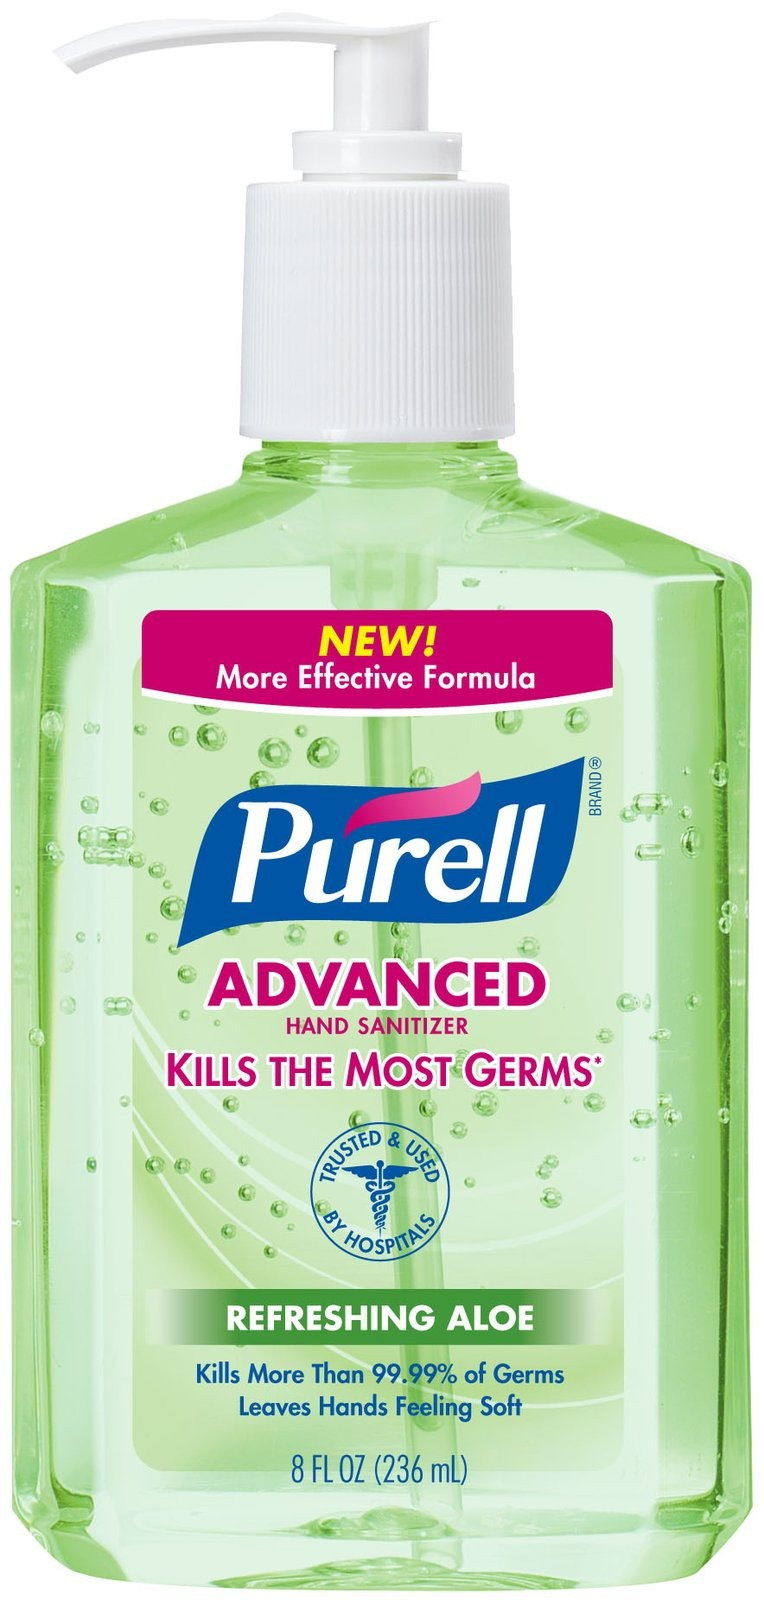 putting hand sanitizer on your hands the taste with be so bad in your mouth you wont want to